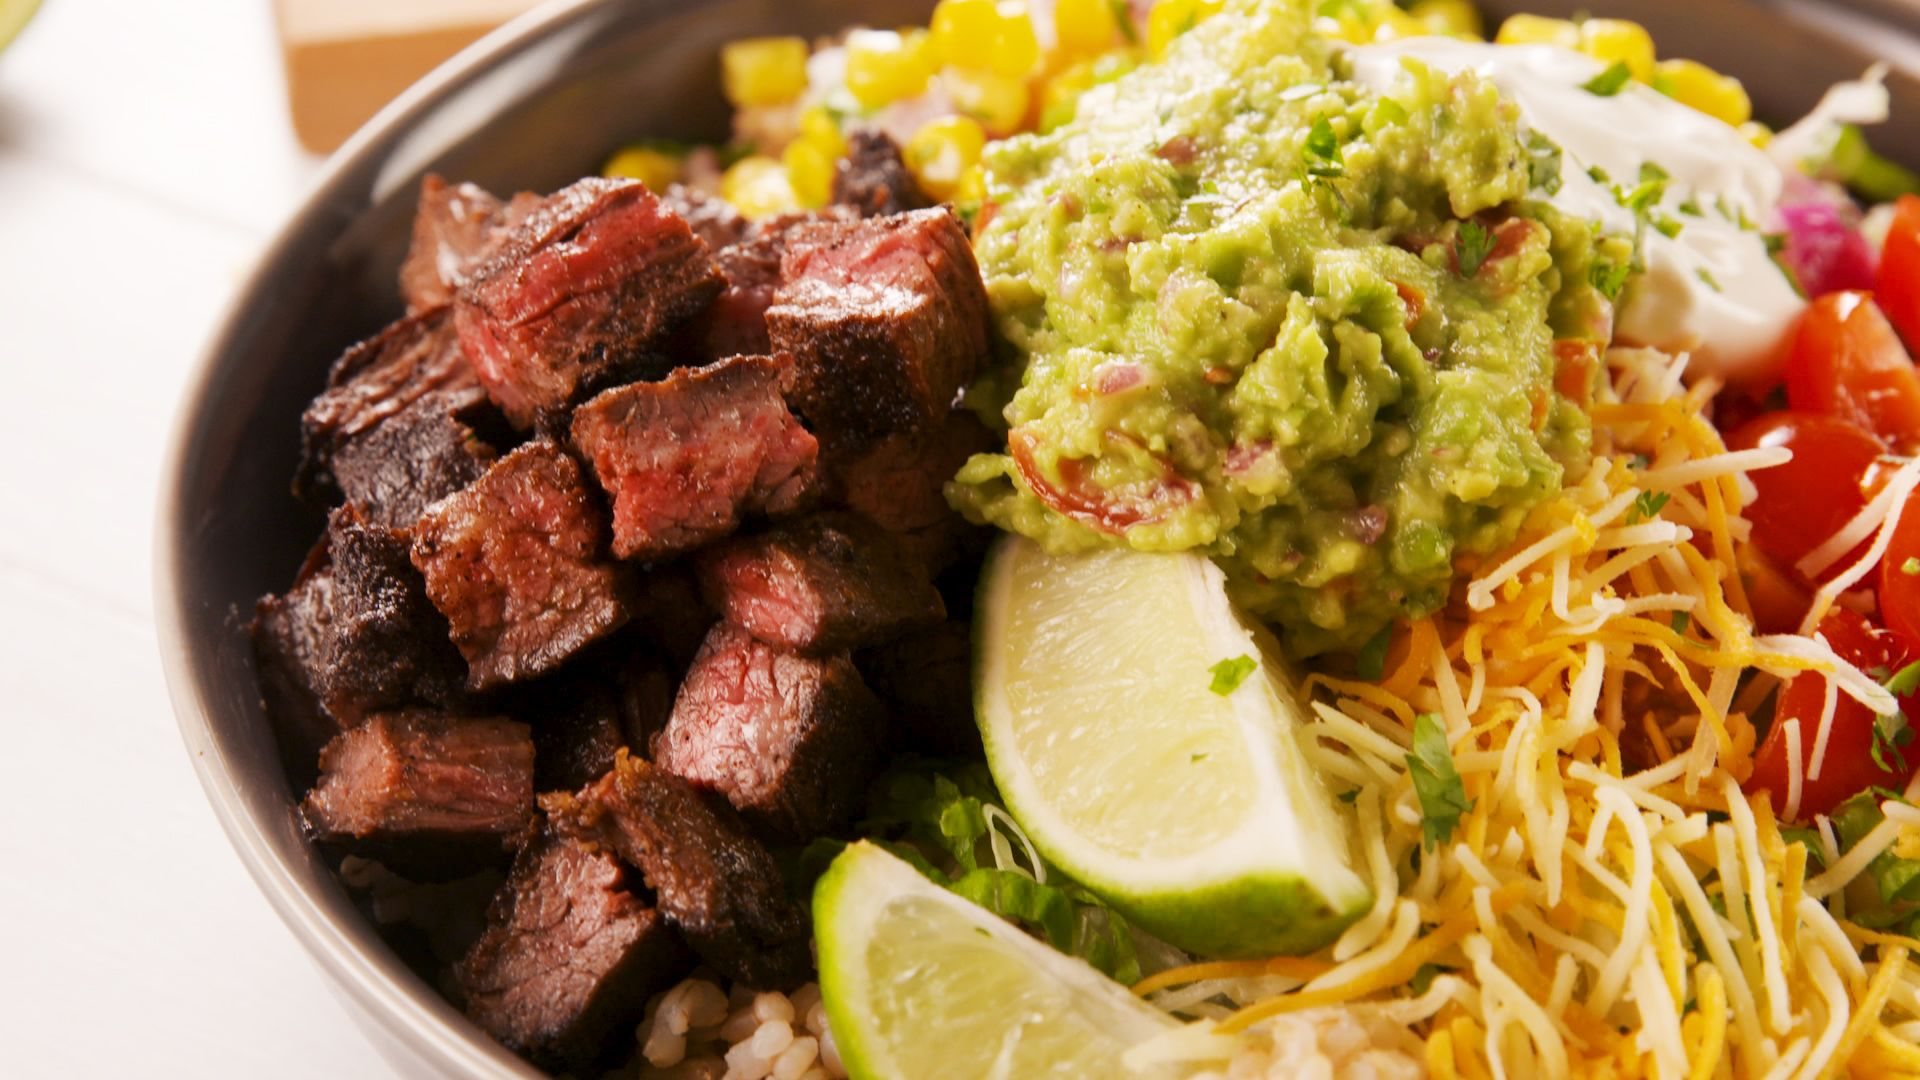 Best Grilled Steak Burrito Bowls Recipe How To Make Grilled Steak Burrito Bowls